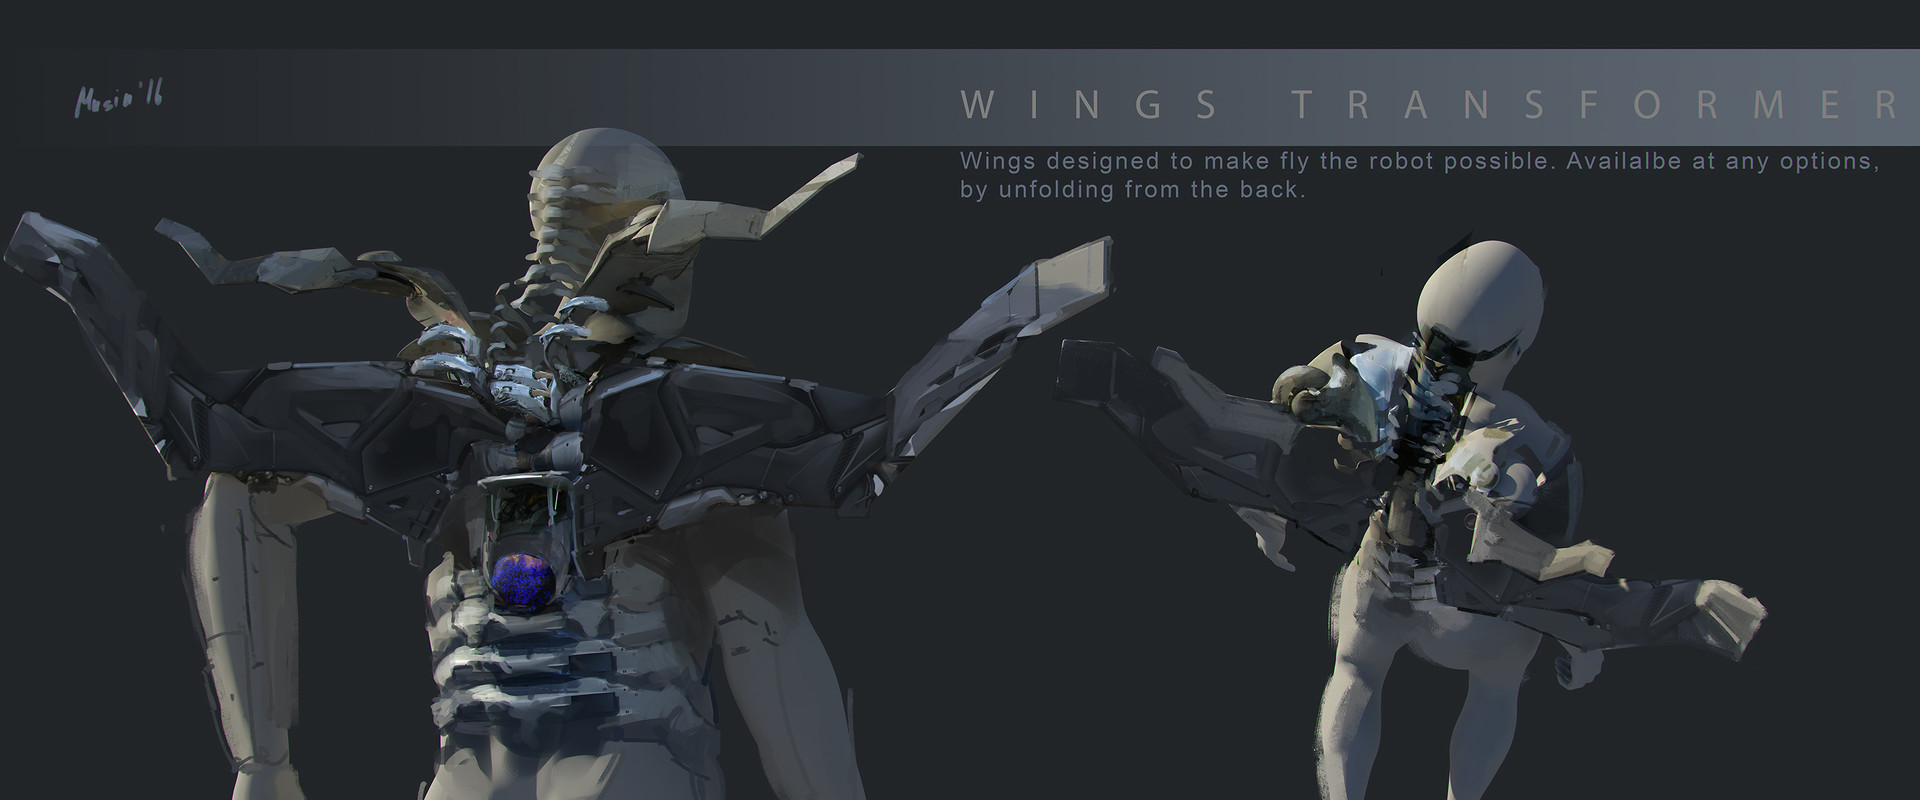 Sergey musin wings concept main01